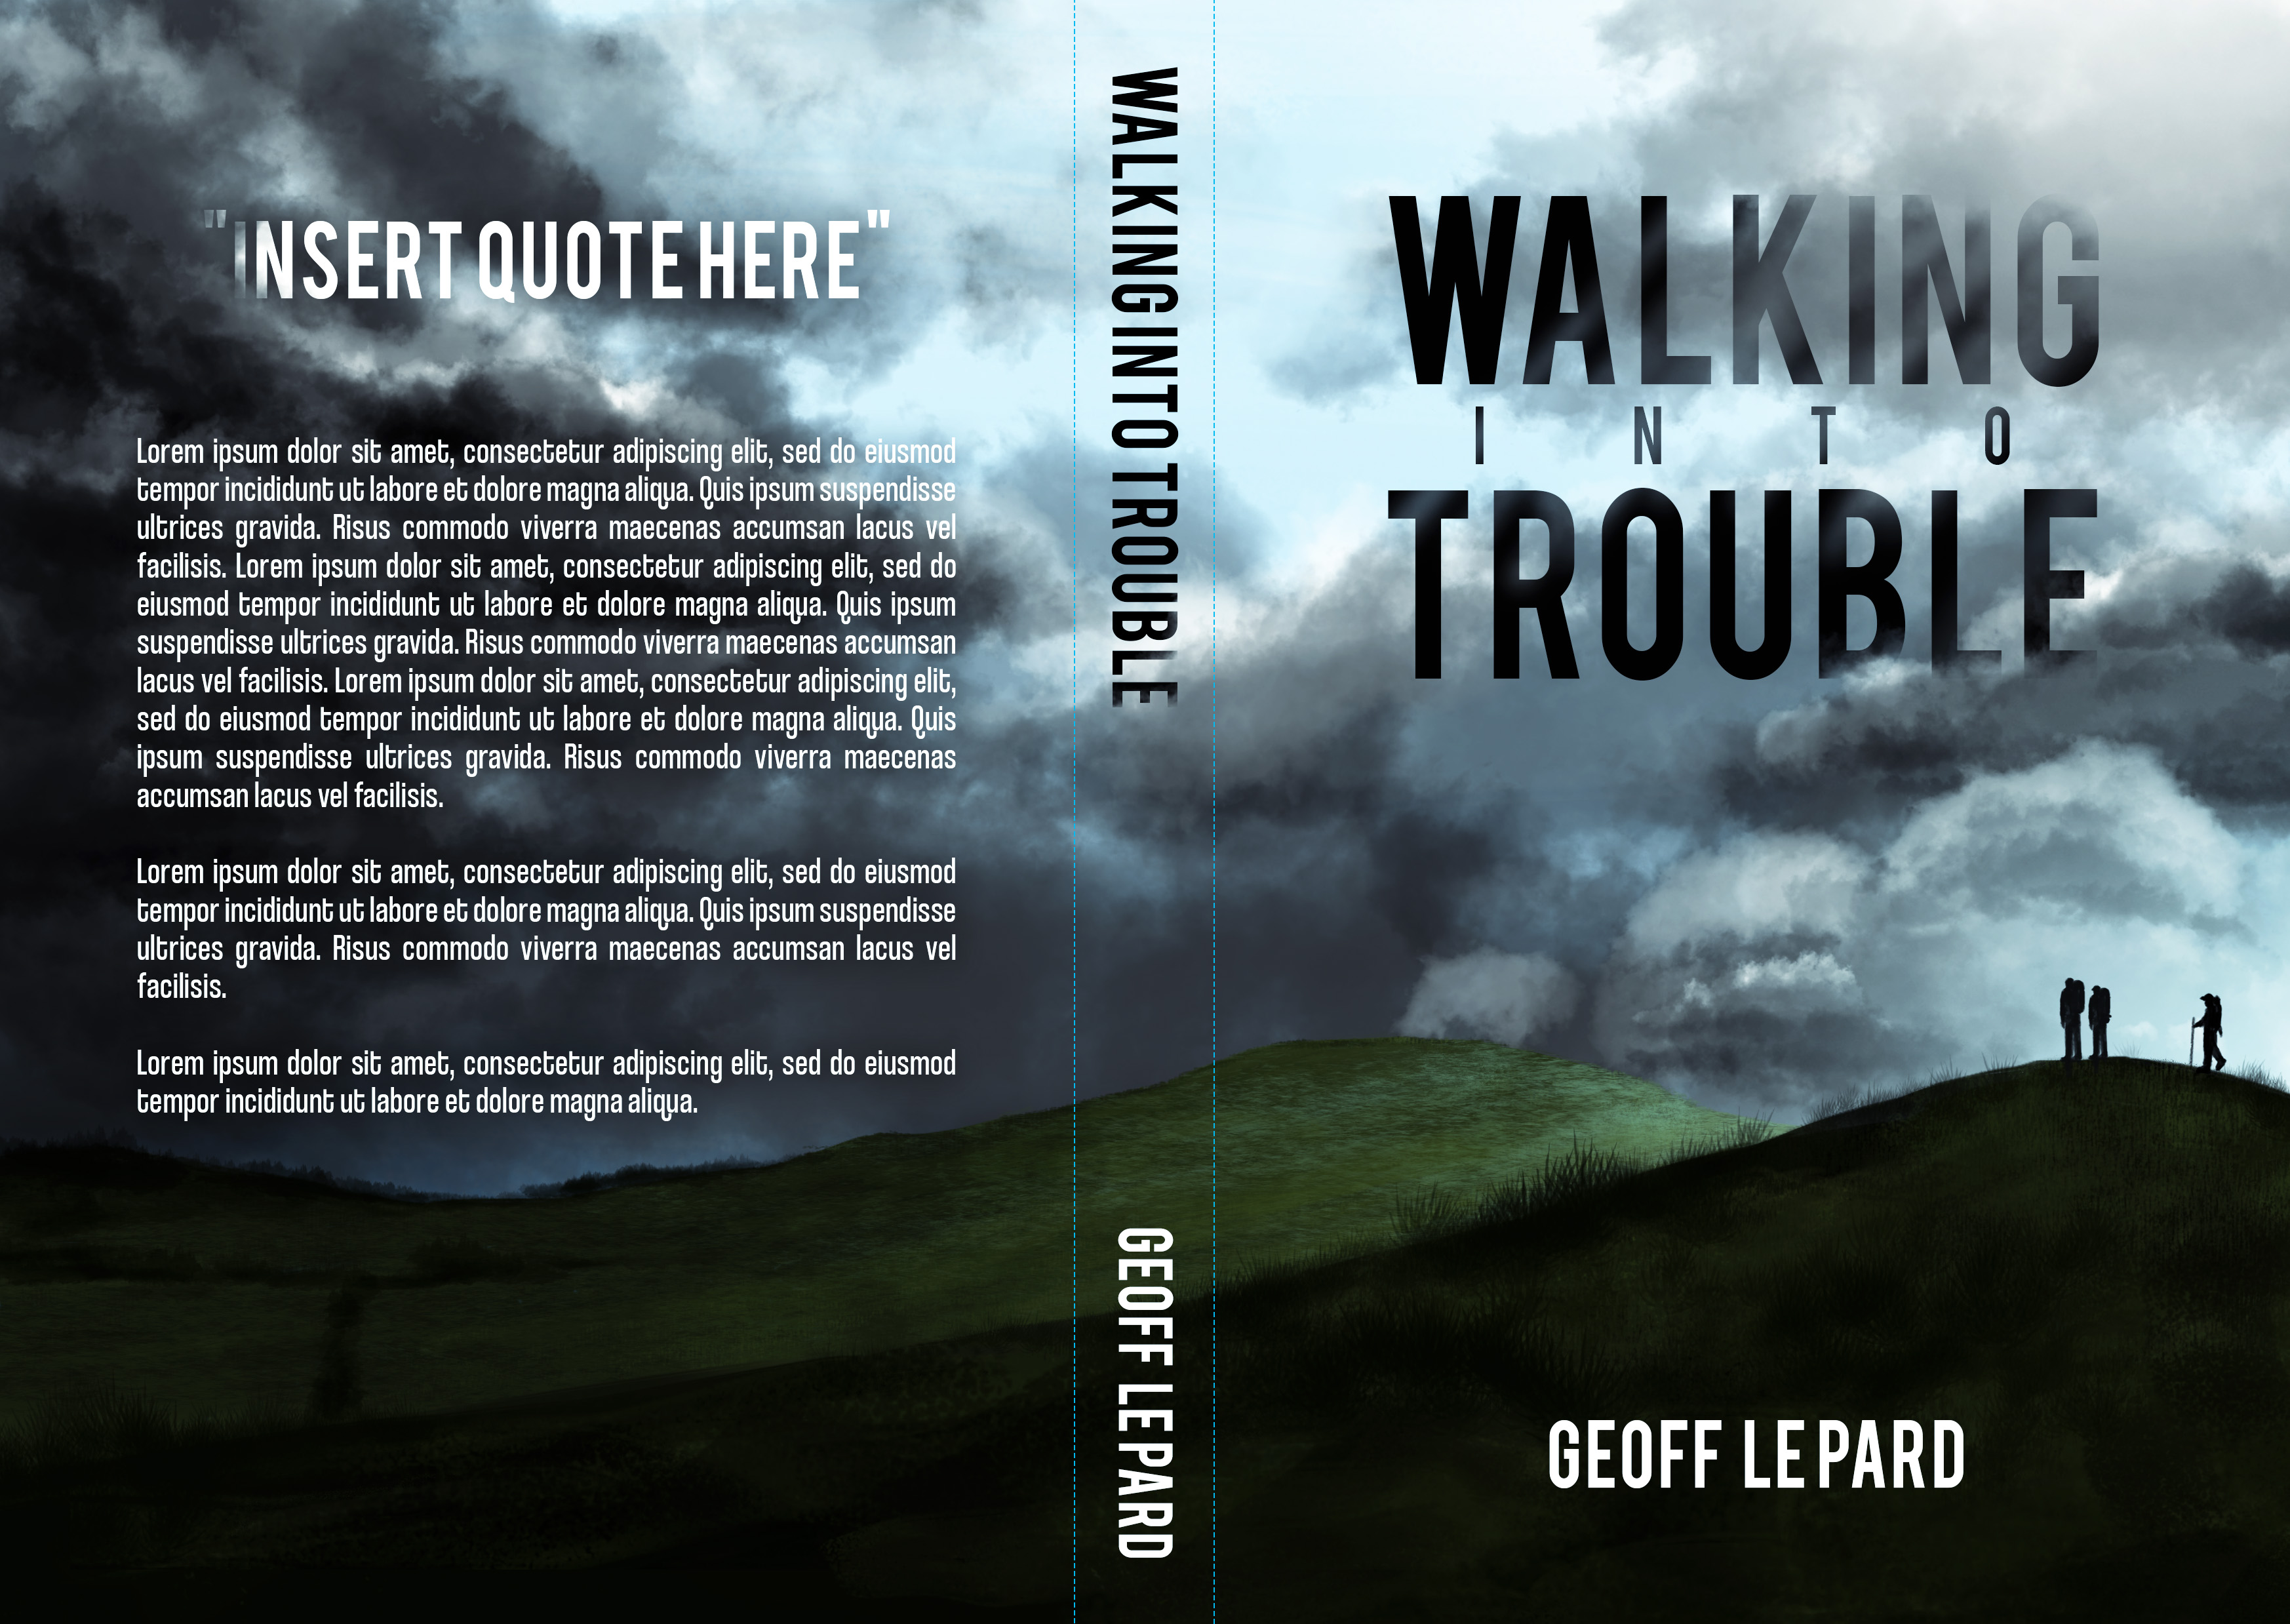 Walking Into Trouble #newbook #cover